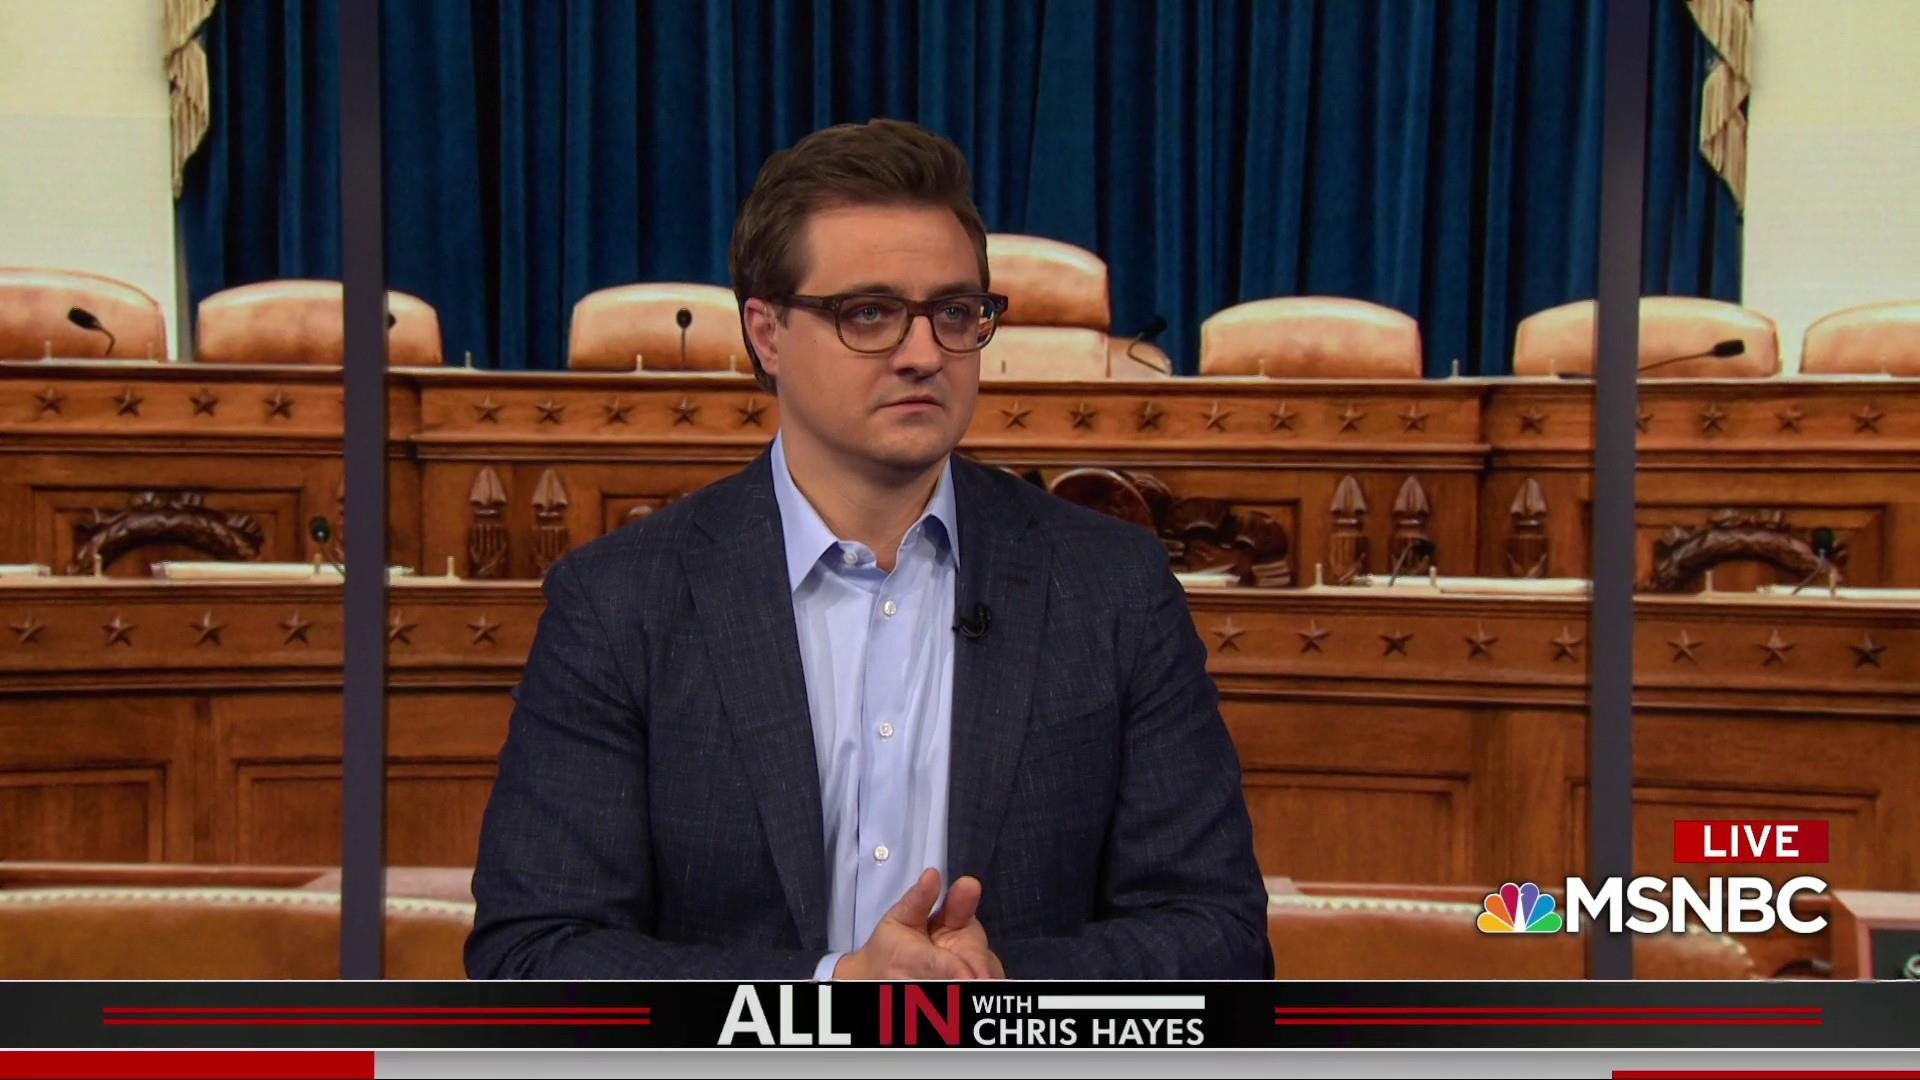 Chris Hayes: Trump got caught cheating, but his supporters don't care